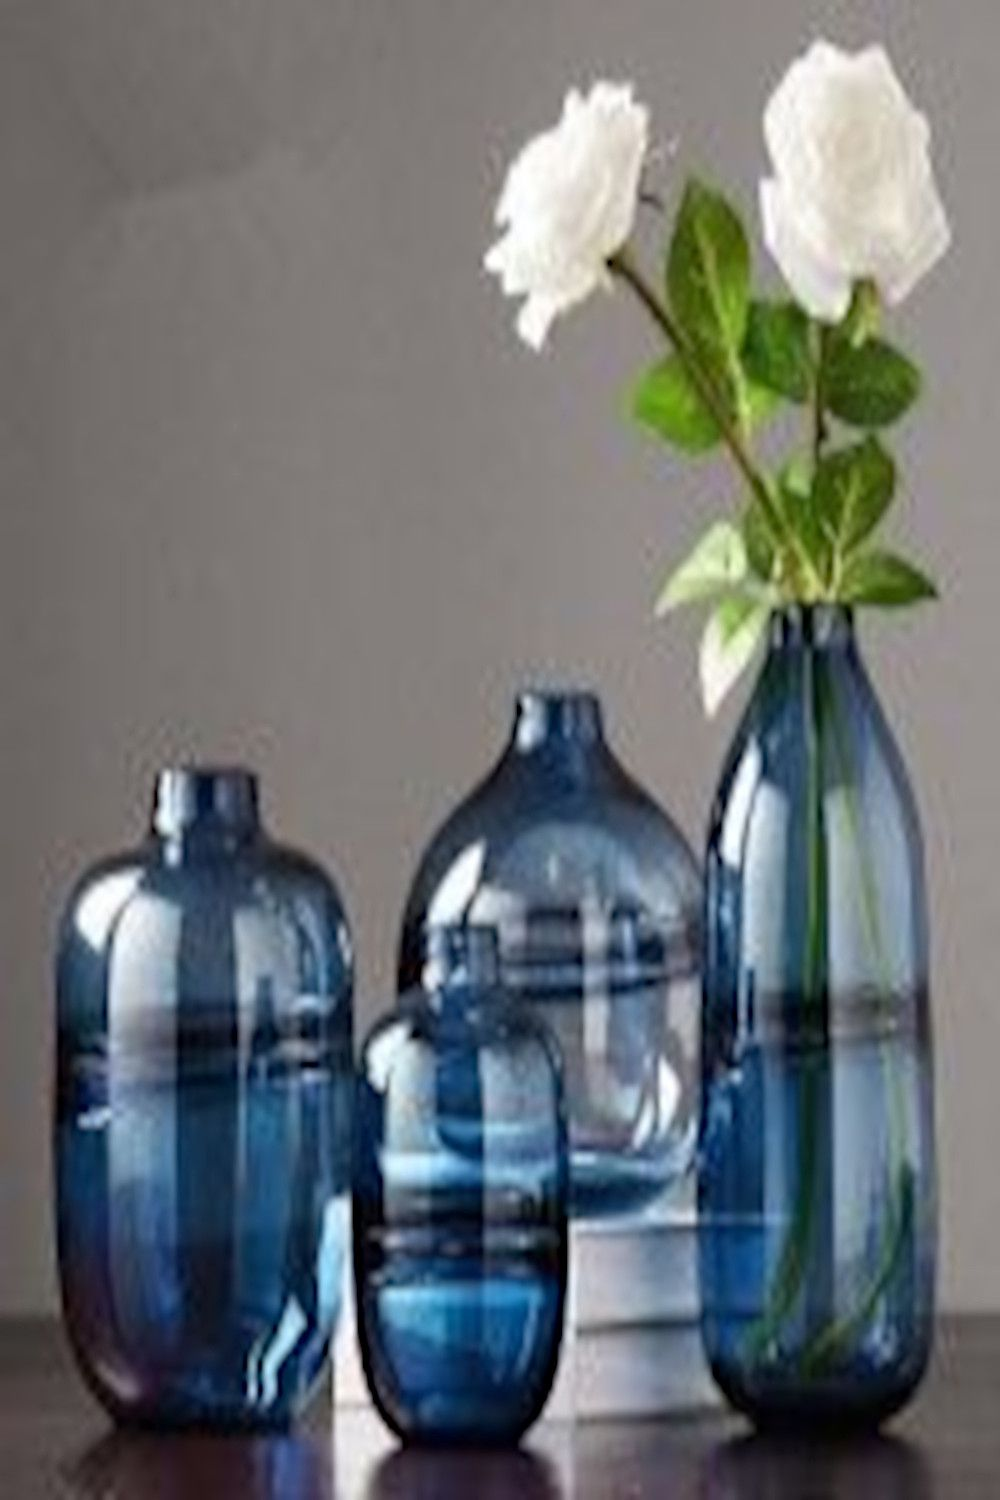 Modern Minimalist Transparent Glass Vase Decoration Nordic Style Living Room With Dried Flower Ornament Glass Vase Glass Vase Decor Clear Glass Vases Nordic Style Living Room